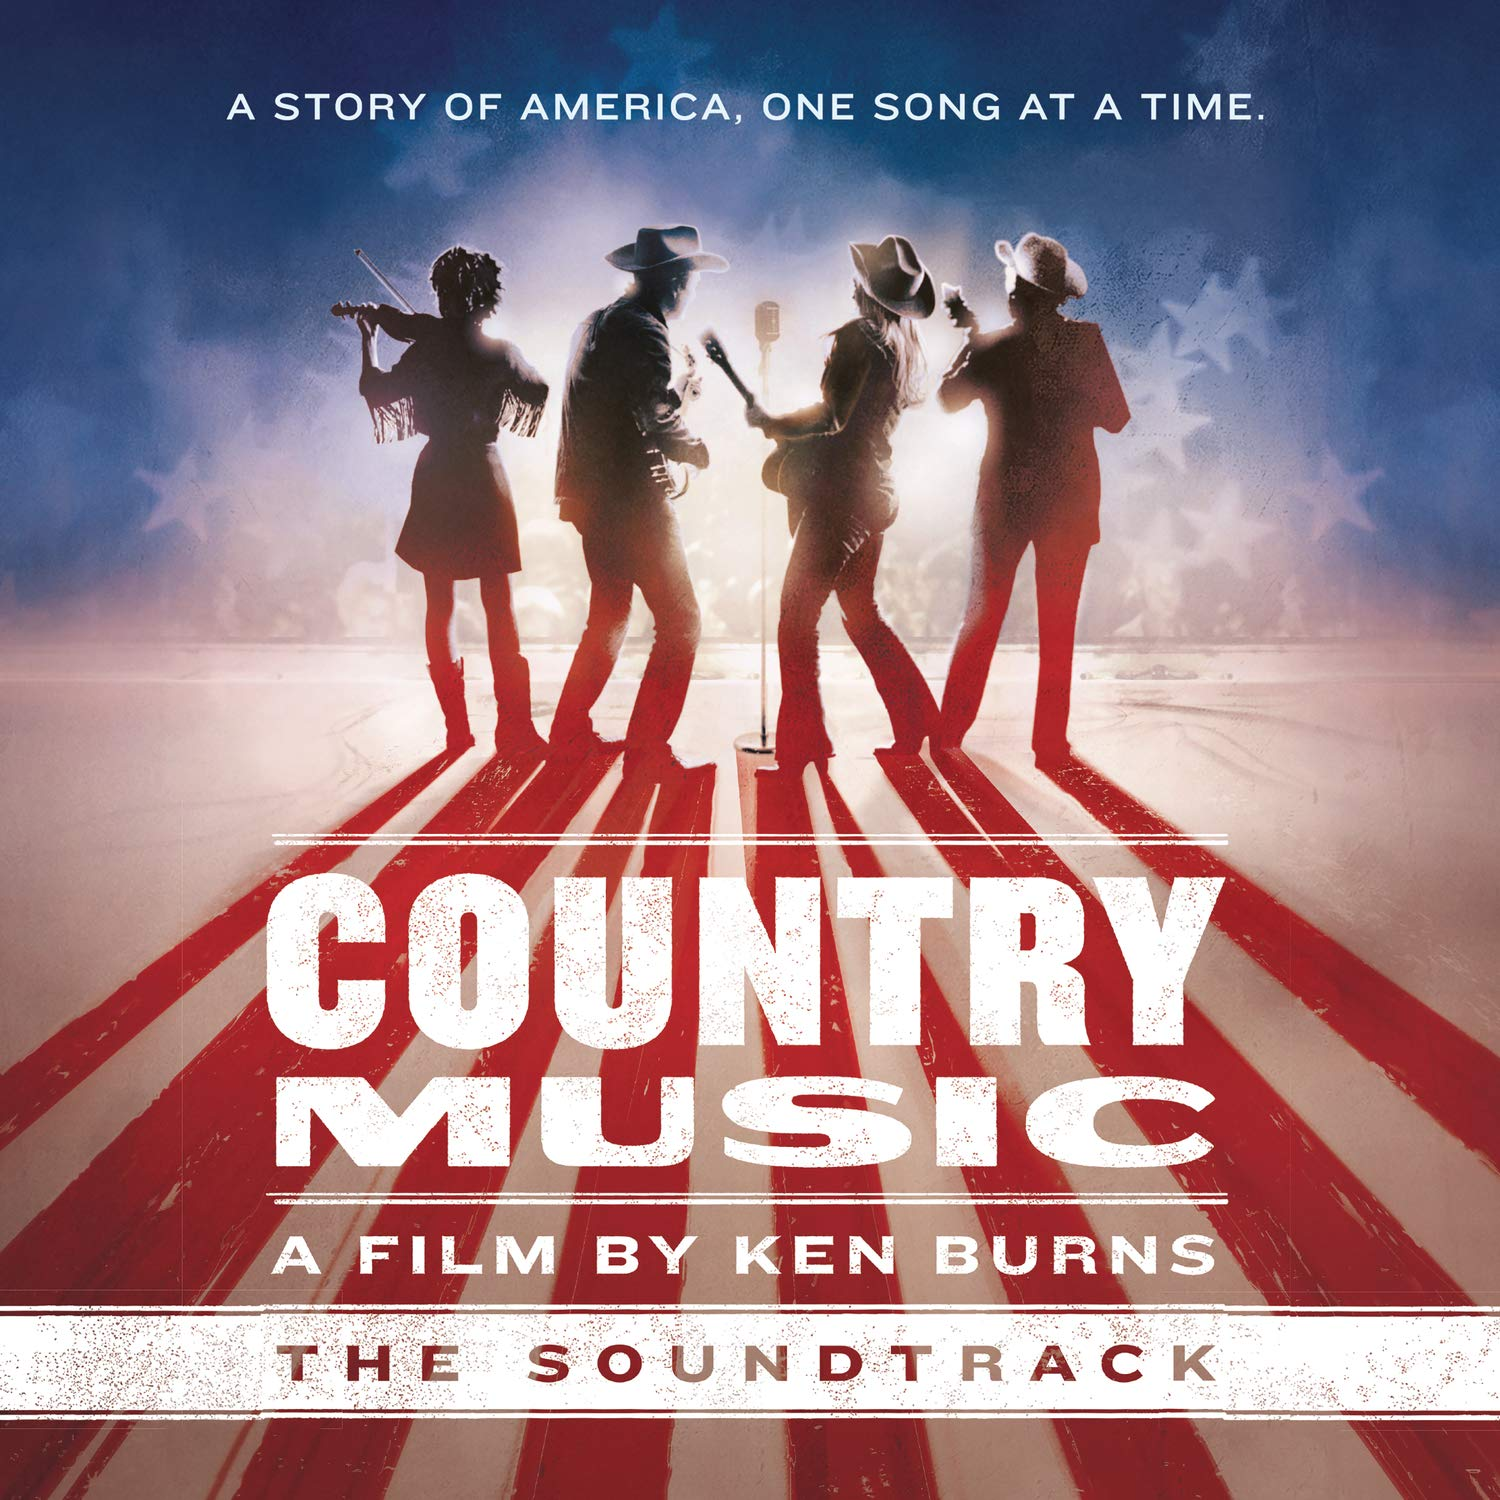 Country Music - A Film by Ken Burns (The Soundtrack) by Sony Legacy